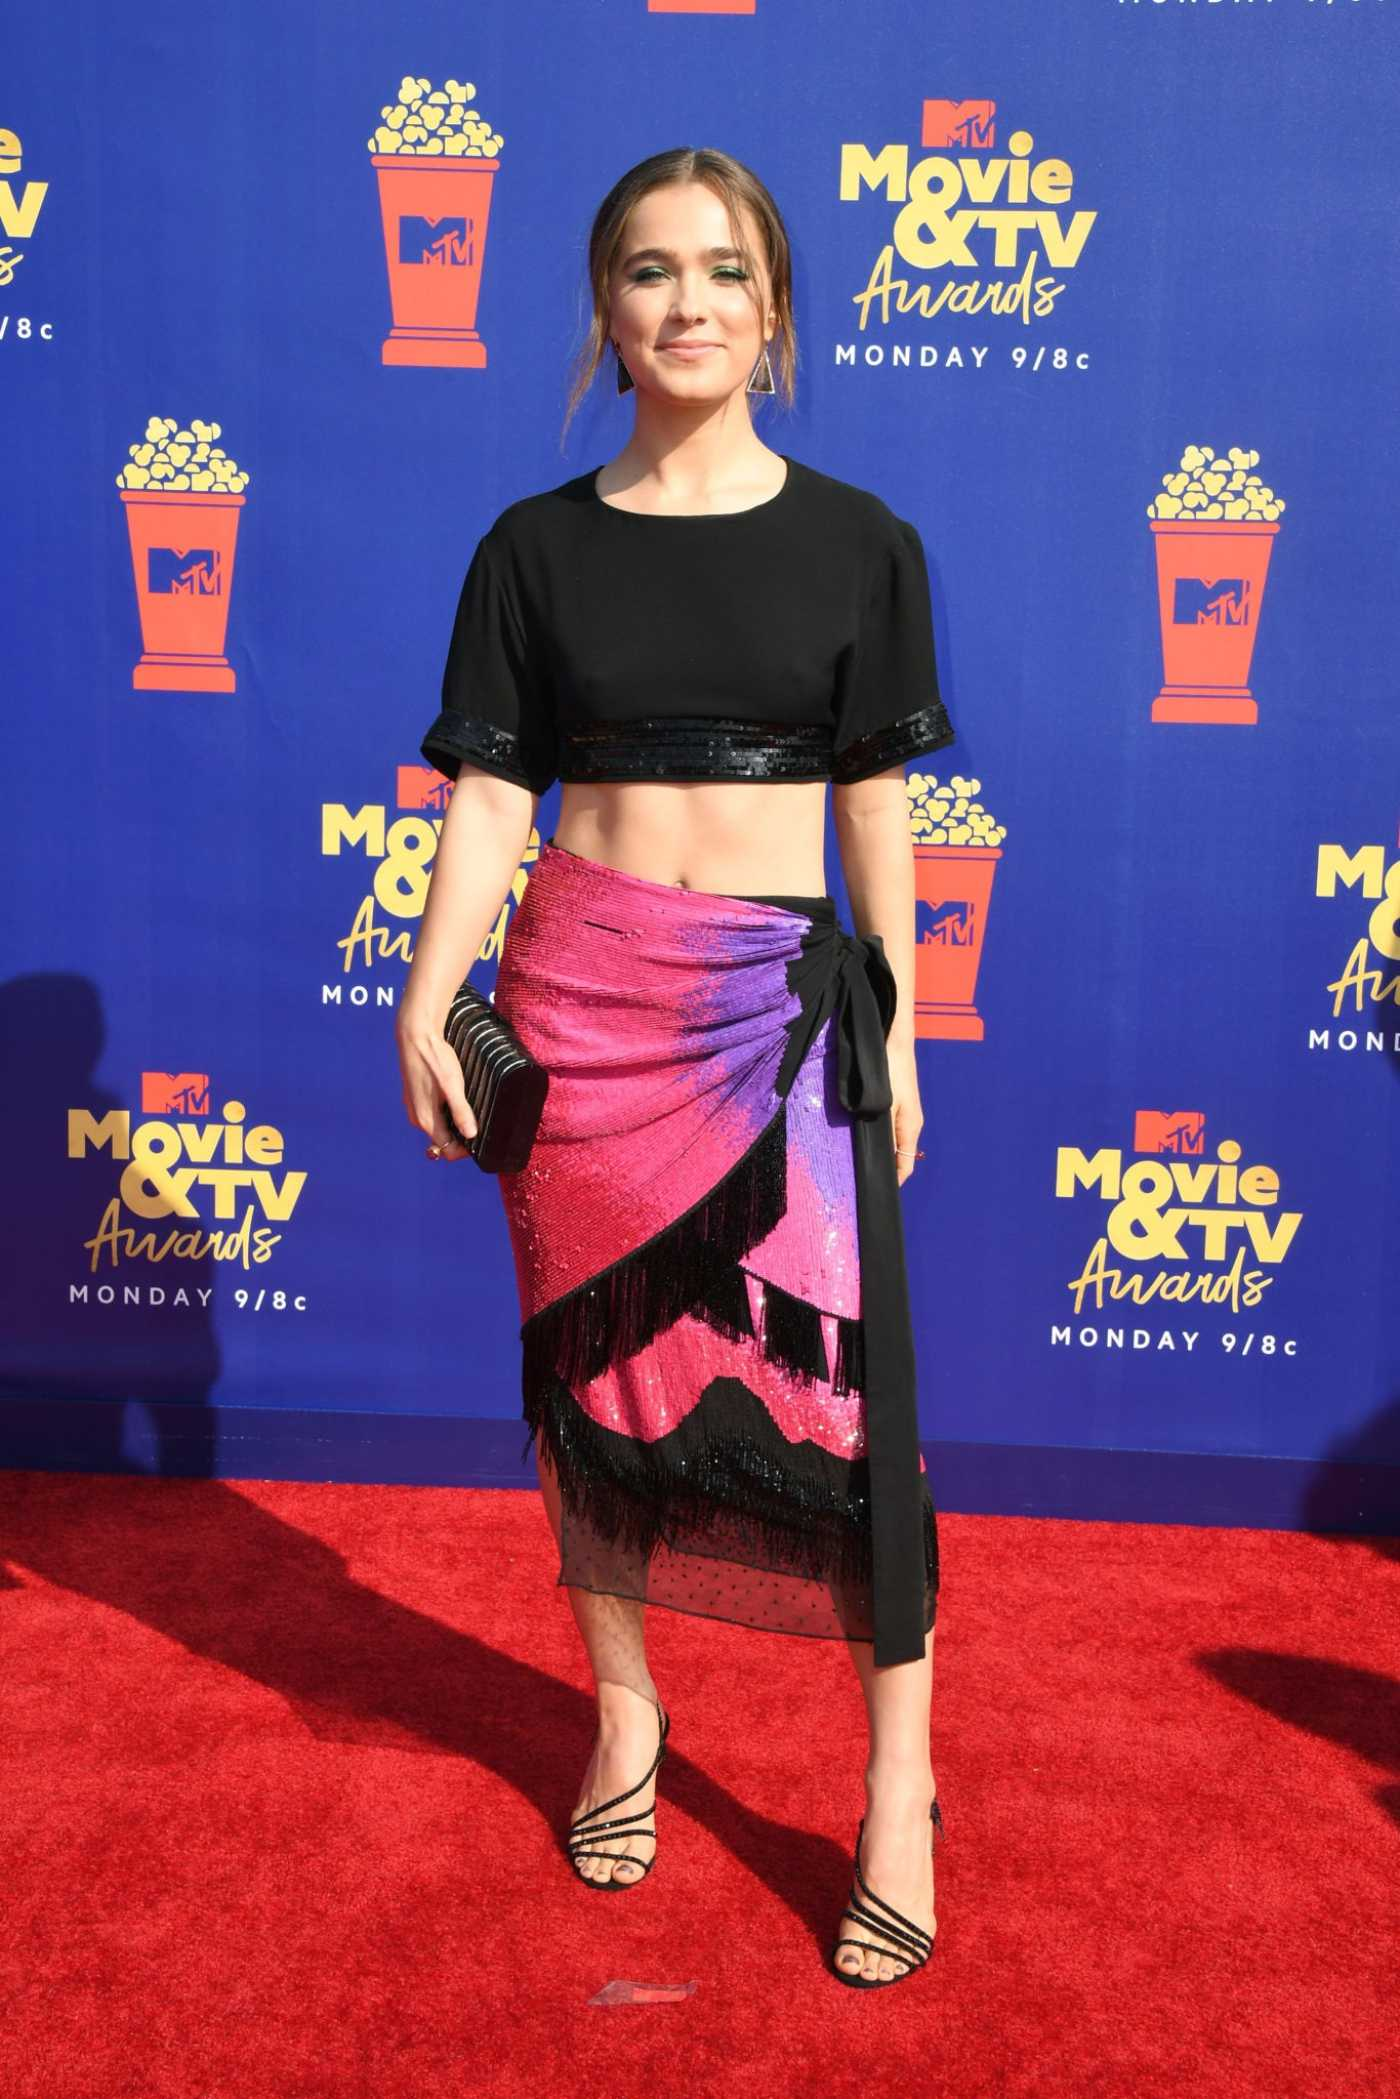 Haley Lu Richardson Attends 2019 MTV Movie and TV Awards at Barker Hangar in Santa Monica 06/15/2019